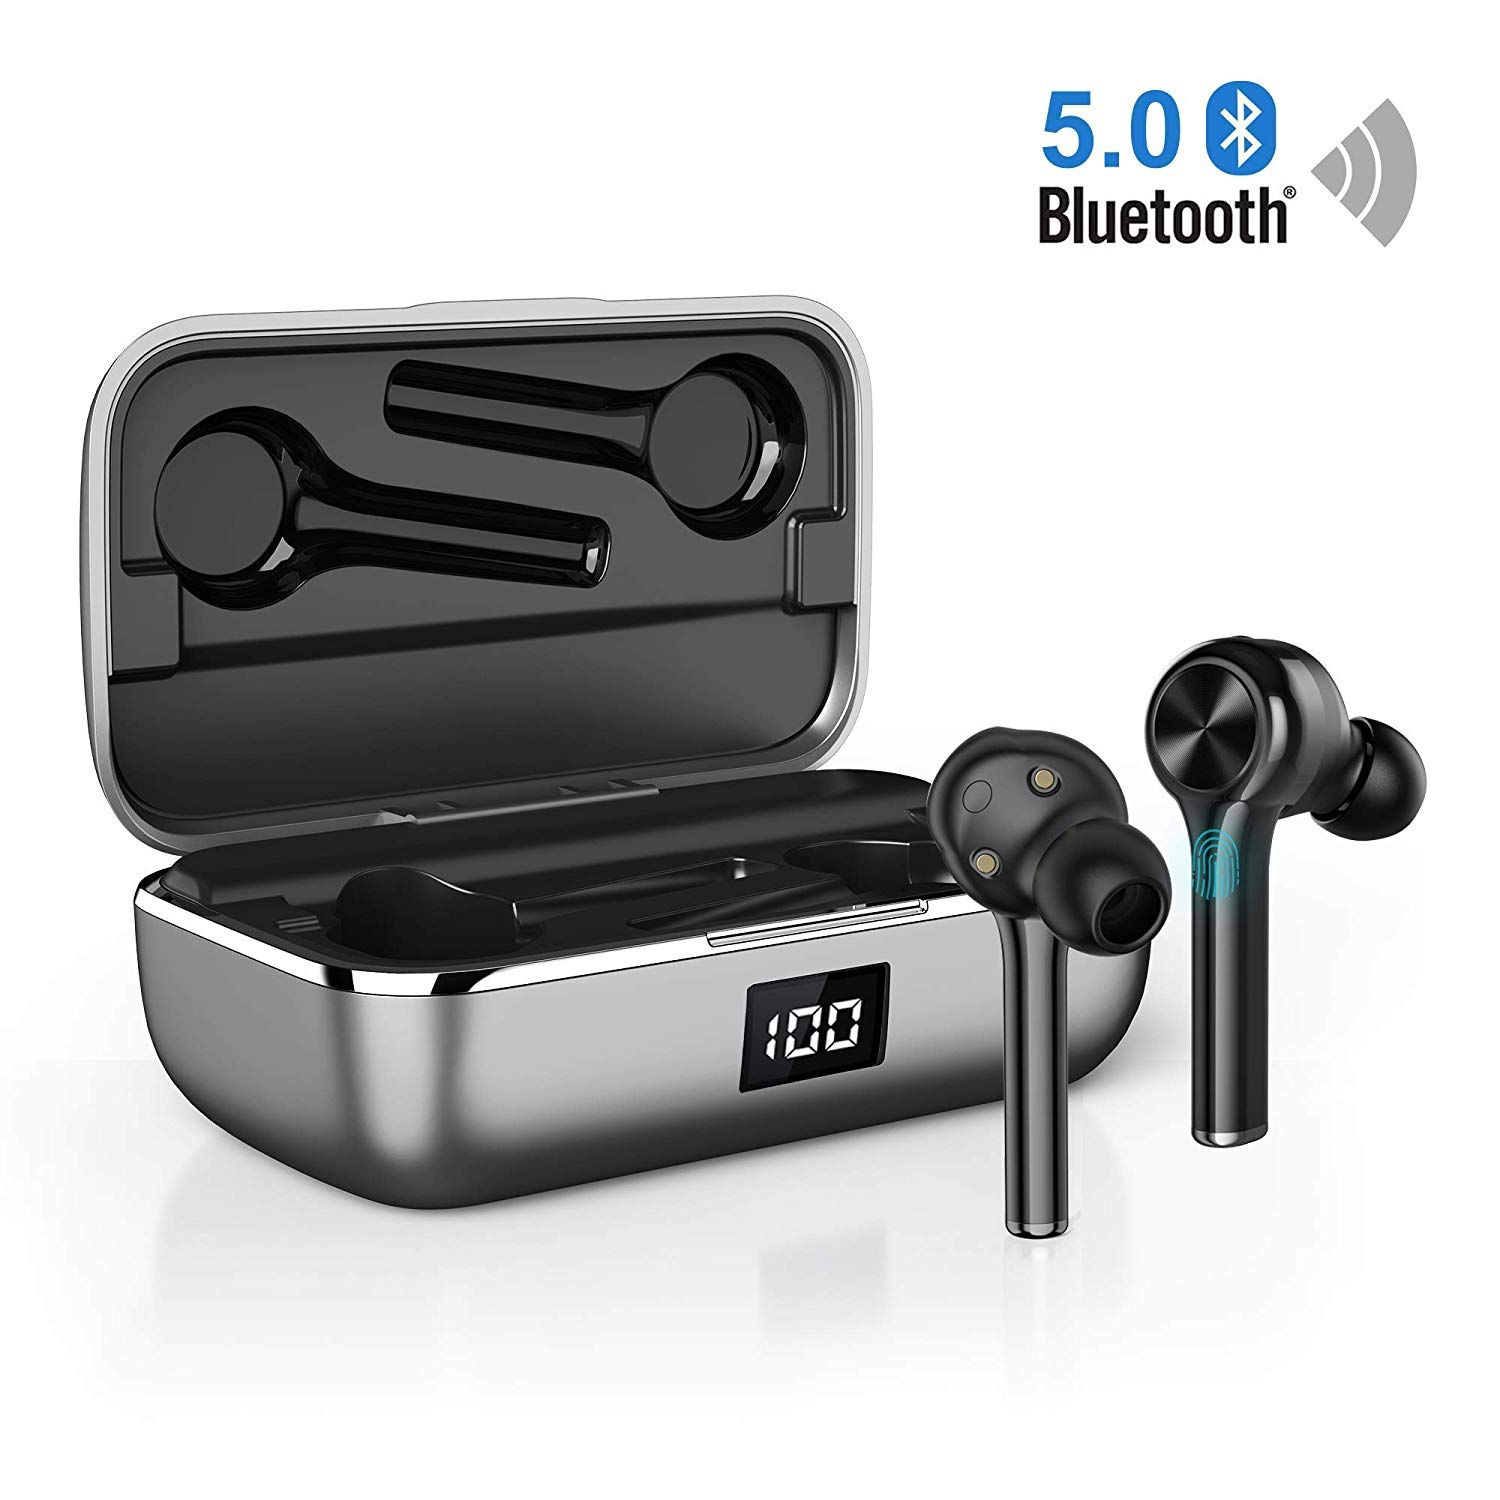 Ecouteur Bluetooth Sans Fil Sport Oreillette Intra Auriculaires Bluetooth Leger Stereo 40 Heures Pla Bluetooth Earbuds Wireless Earbuds Black Bluetooth